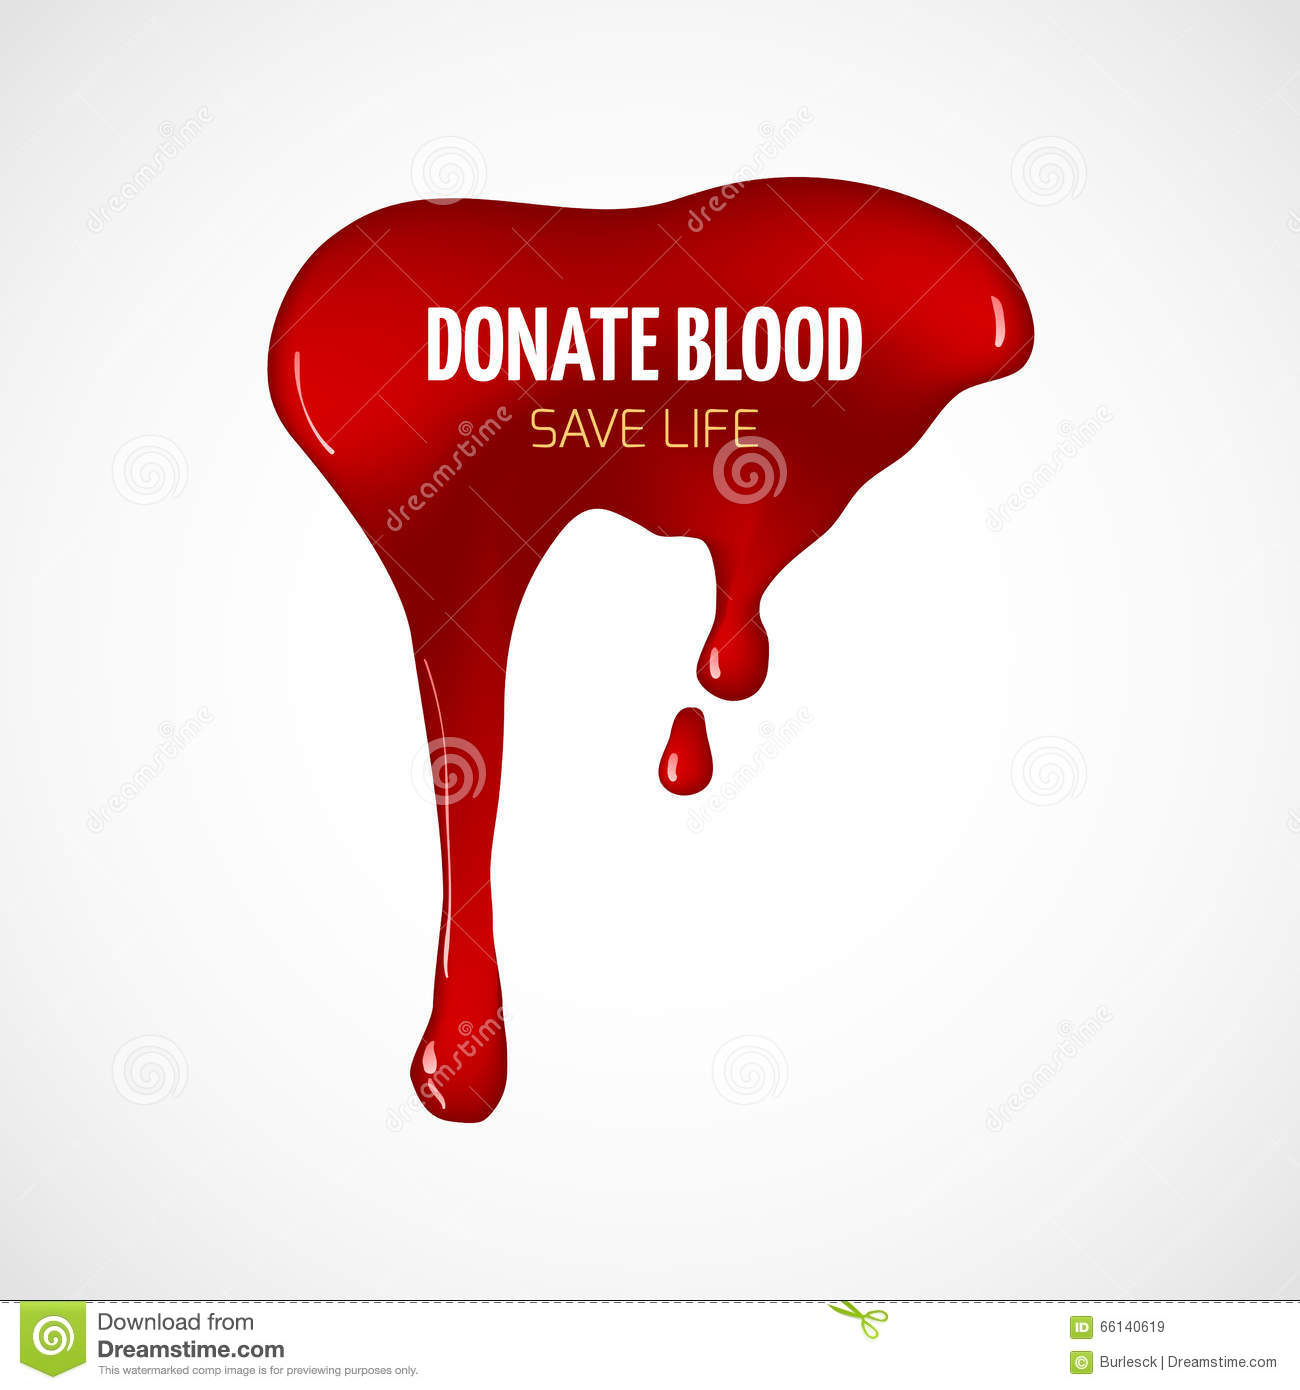 Poster design on blood donation - Blood Donate Donation Healthy Help Illustration Life Poster